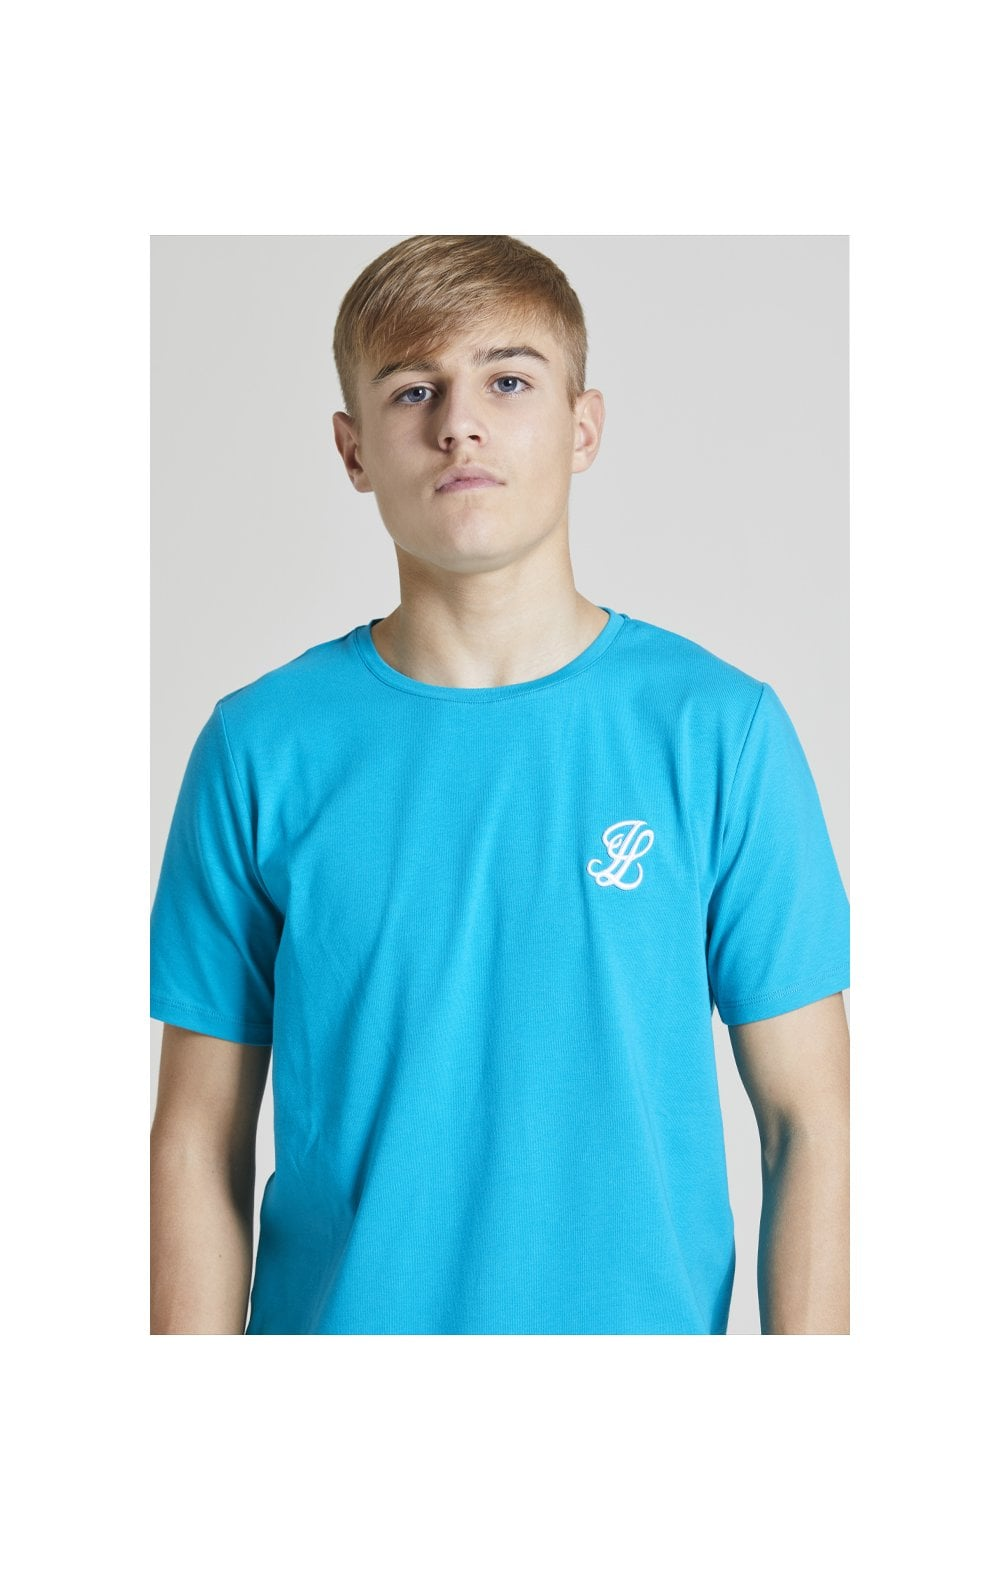 Load image into Gallery viewer, Illusive London Core Tee - Teal Green